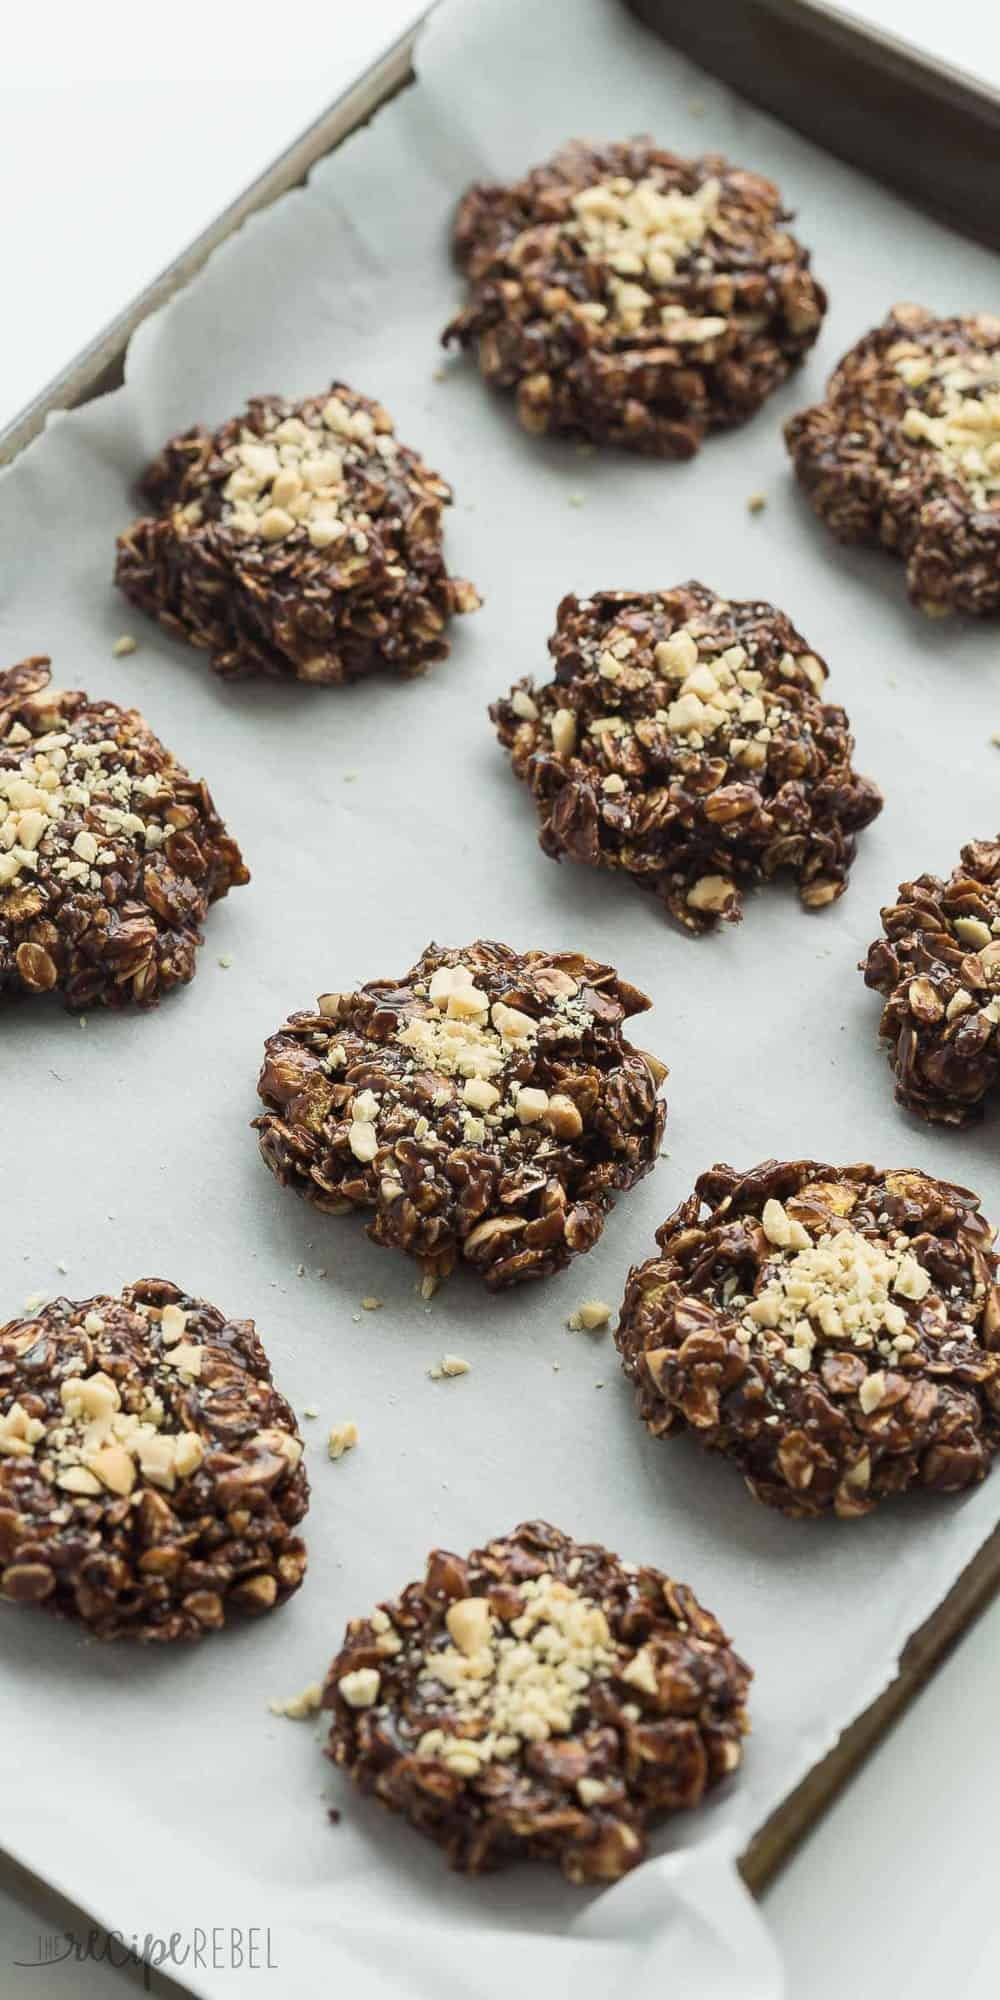 These Chocolate Peanut Butter No Bake Cookies are made better for you with no refined sugar, and a boost of protein from peanut butter, peanuts and oats! Just 10 minutes prep and easily made gluten-free.